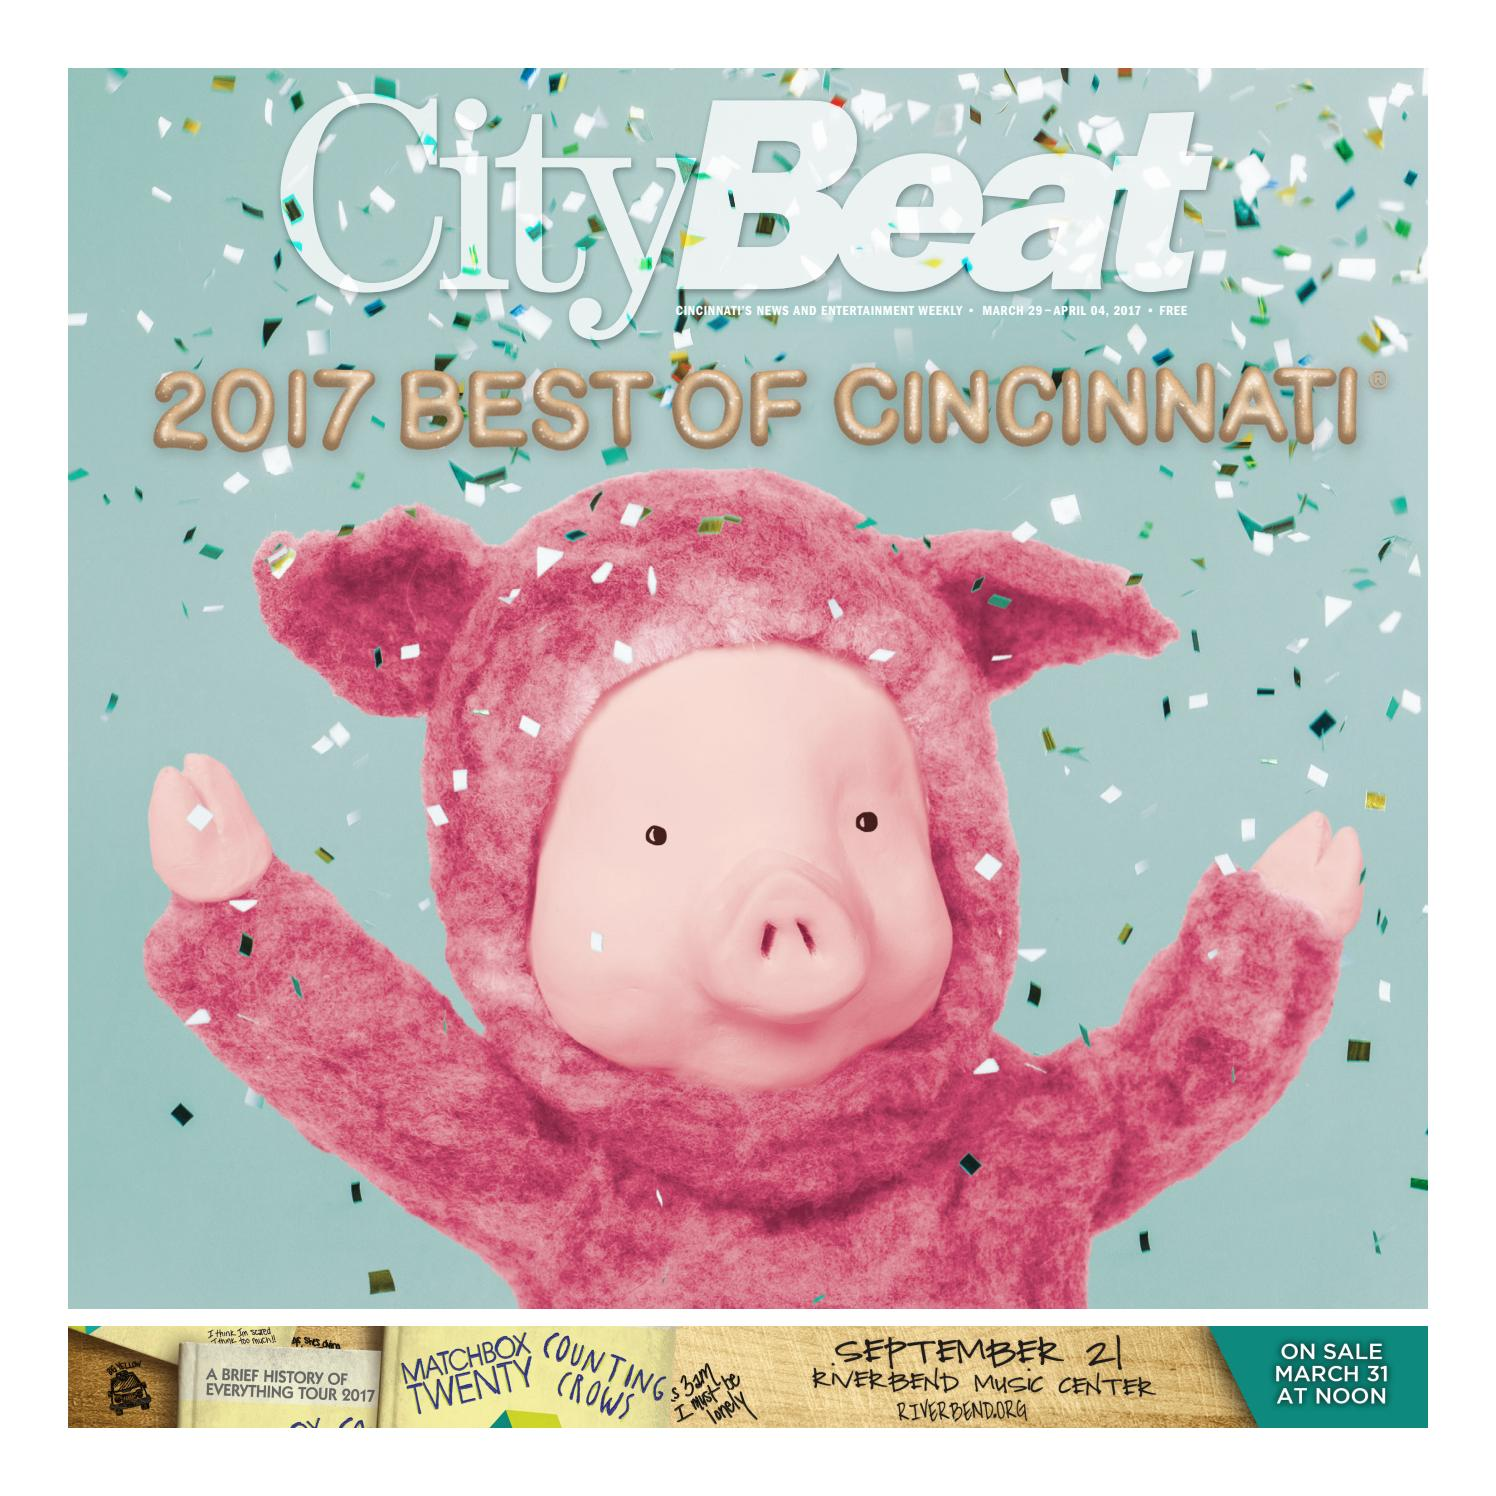 CityBeat March 29 2017 by Cincinnati CityBeat issuu